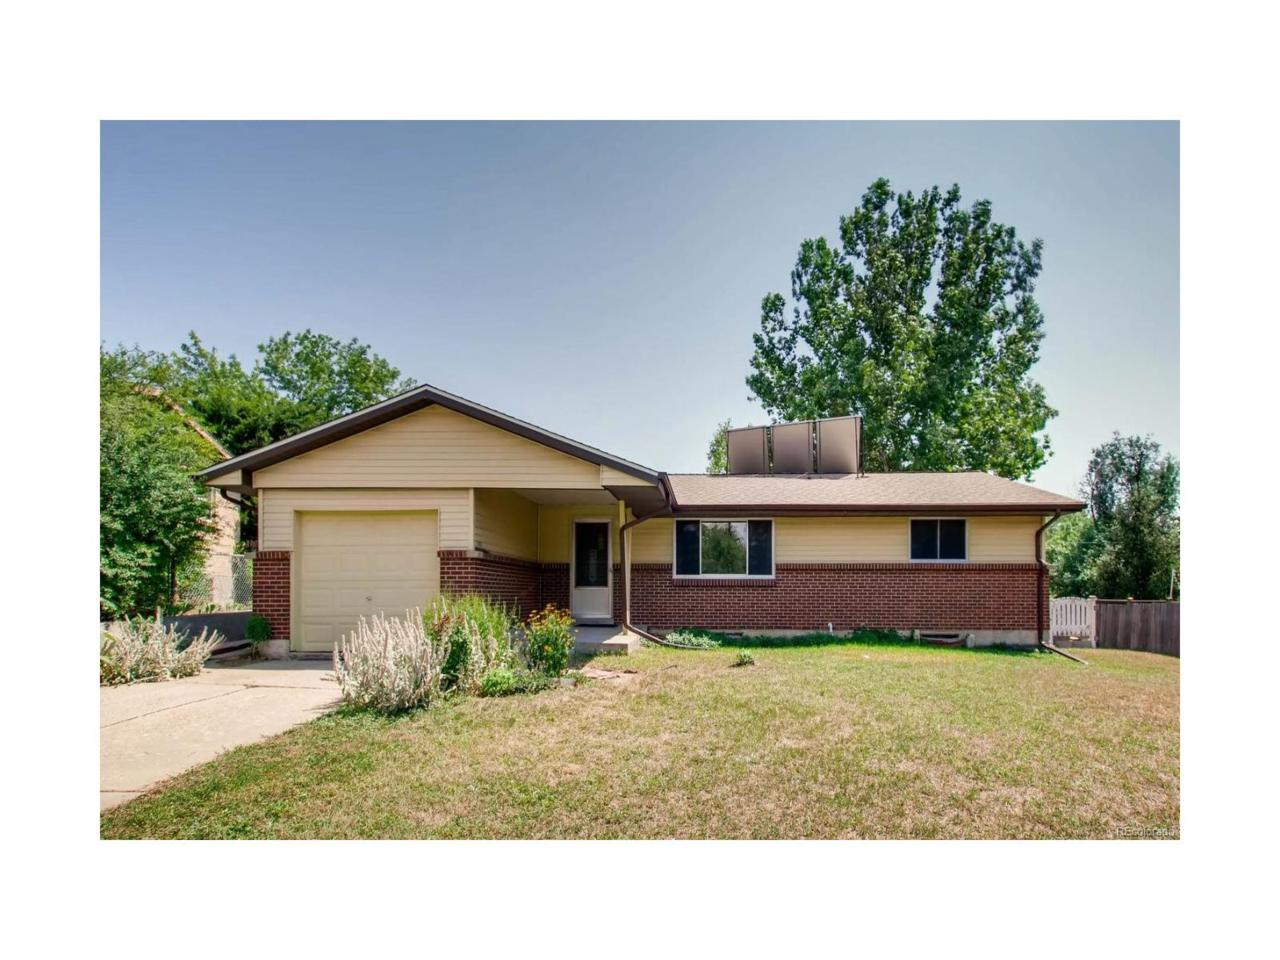 4220 W 82nd Avenue, Westminster, CO 80031 (MLS #1523290) :: 8z Real Estate